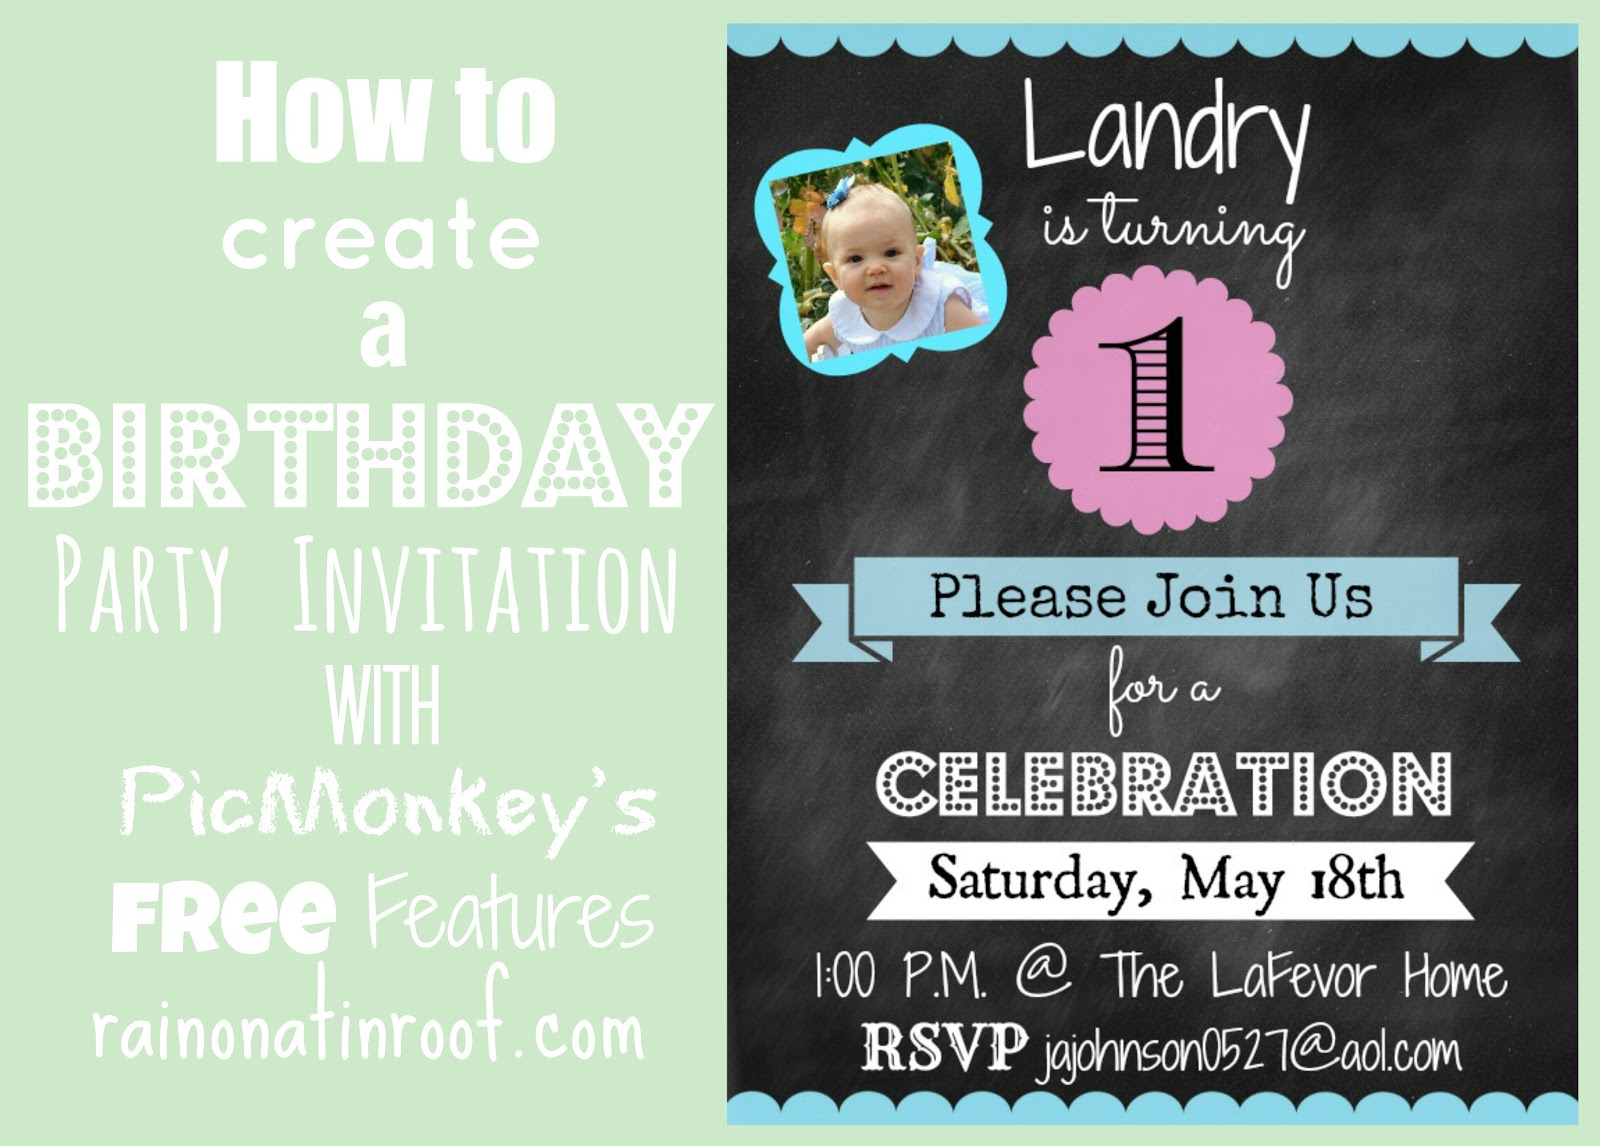 birthday design invitations ; how+to+create+a+birthday+party+invitation+with+picmonkeys+free+features